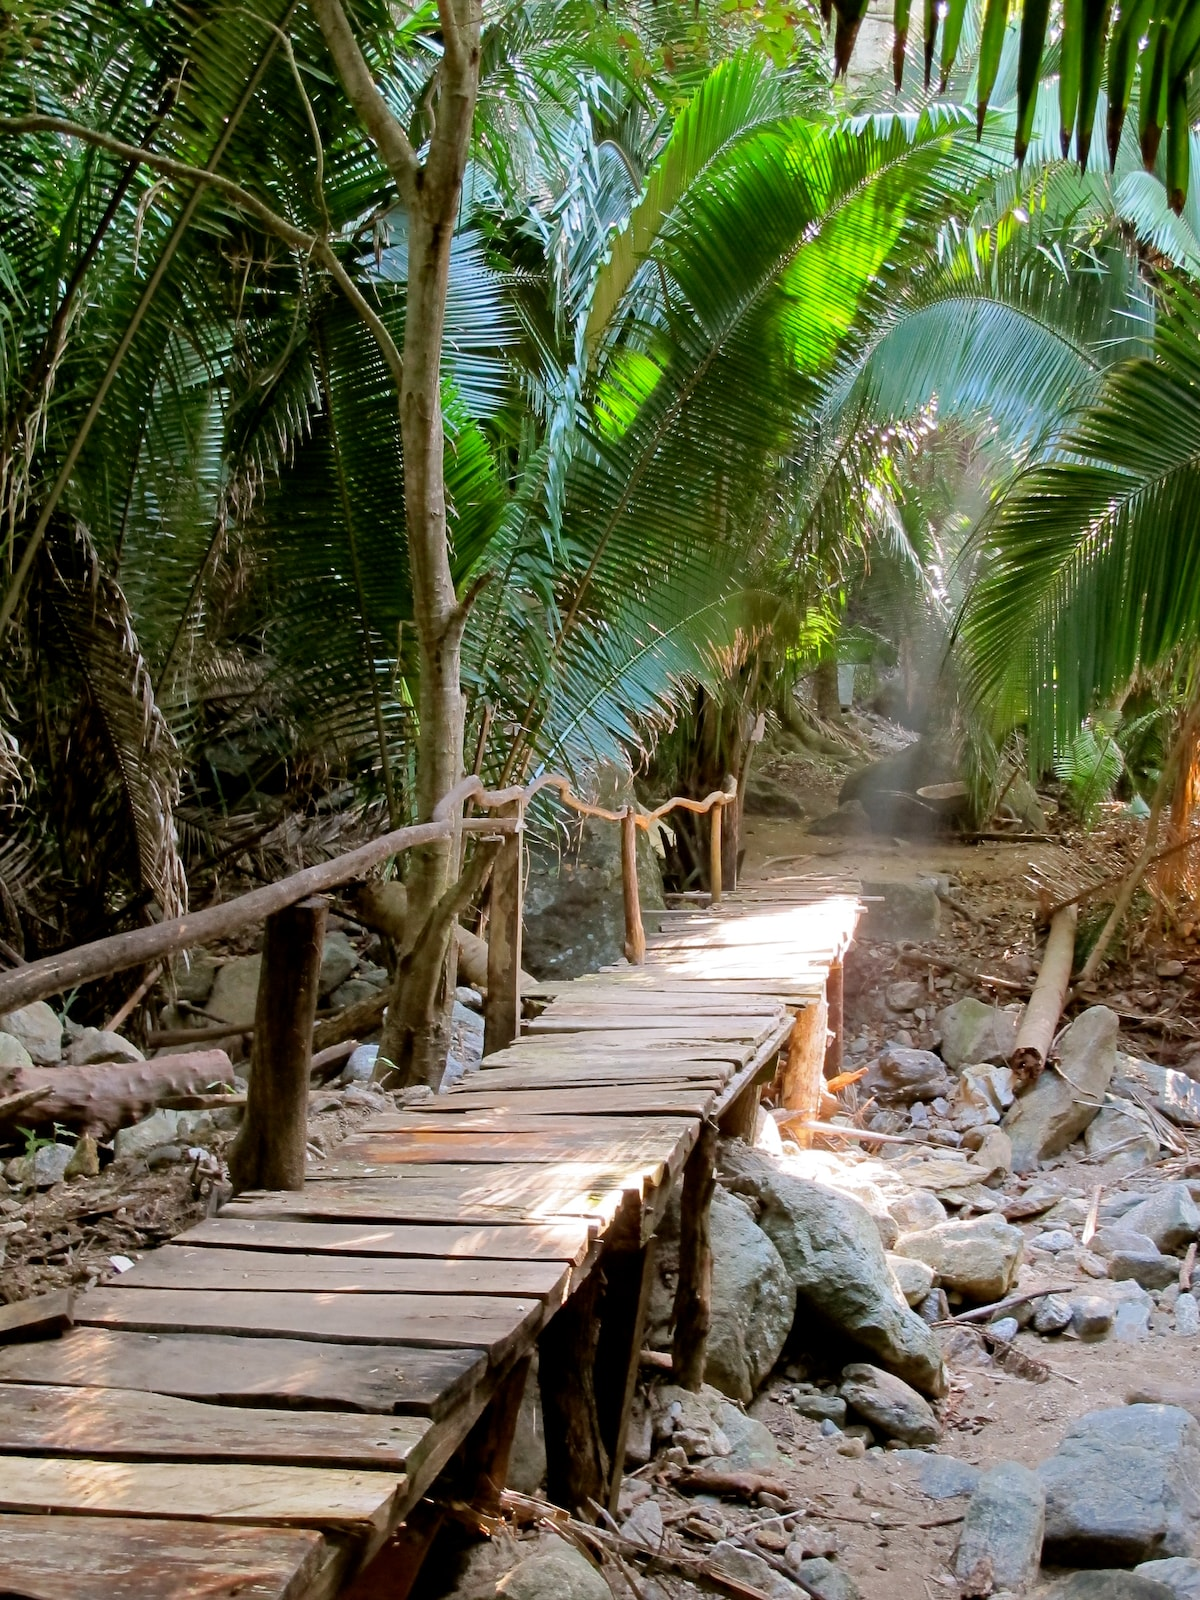 Bridge through the jungle to the palapa.